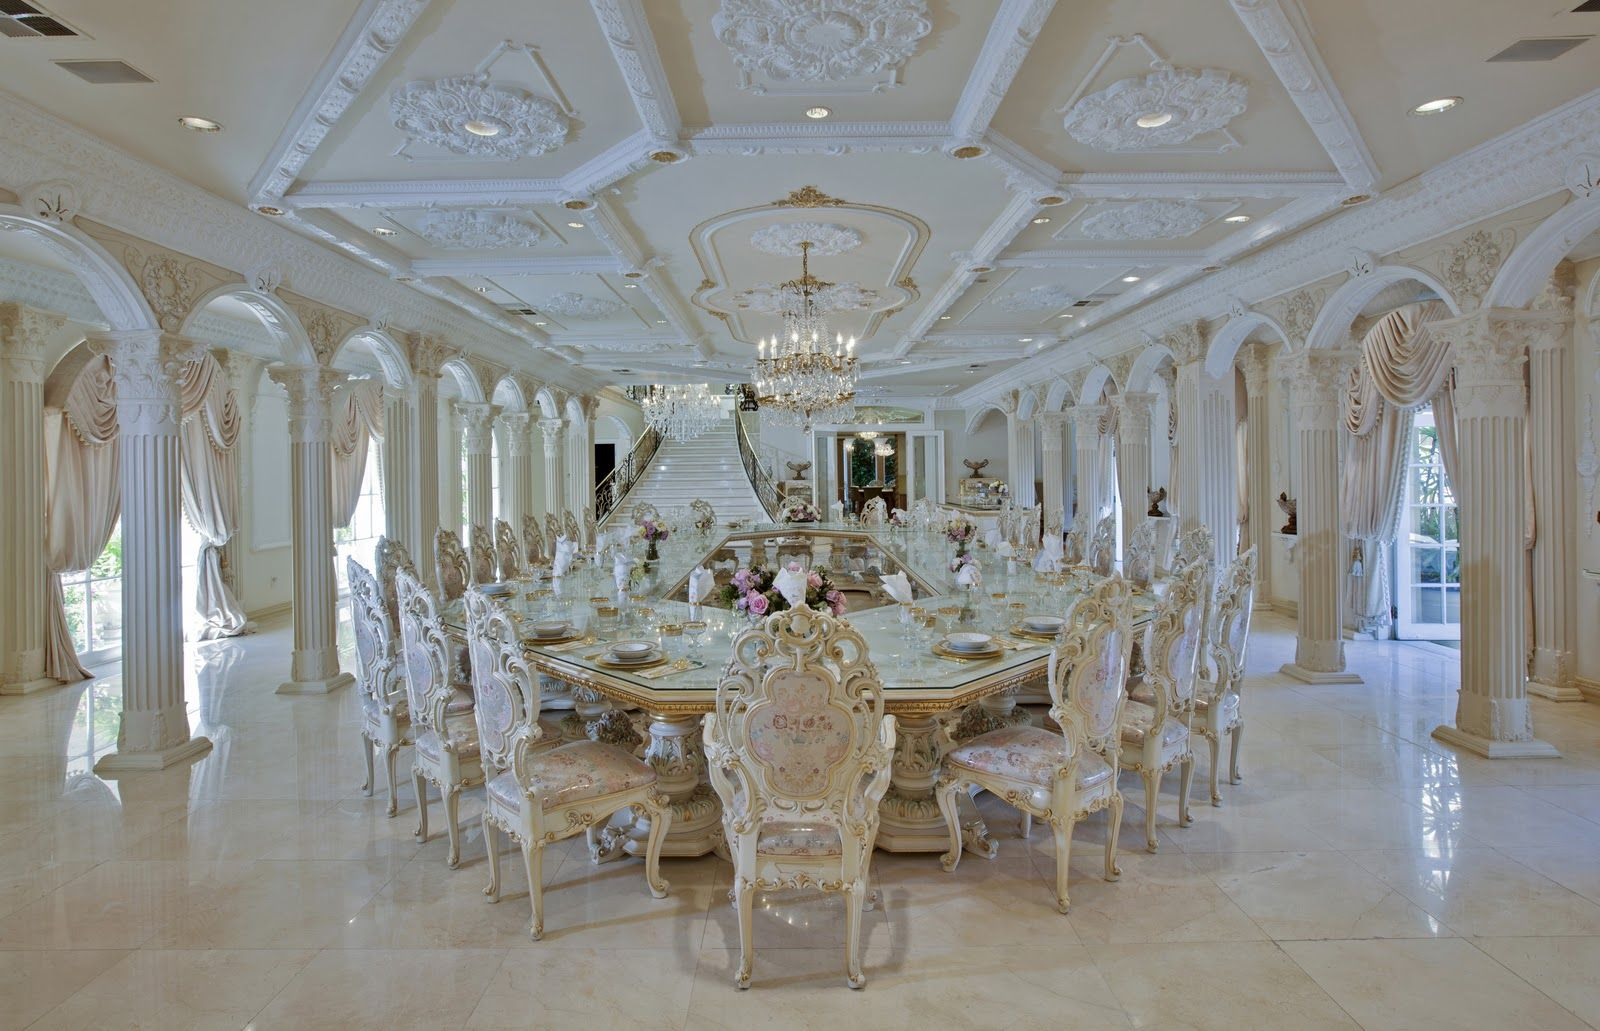 Le Chateau D Or Featured On Hgtv S Million Dollar Rooms Not My Cup Of Tea But Definitely Grand